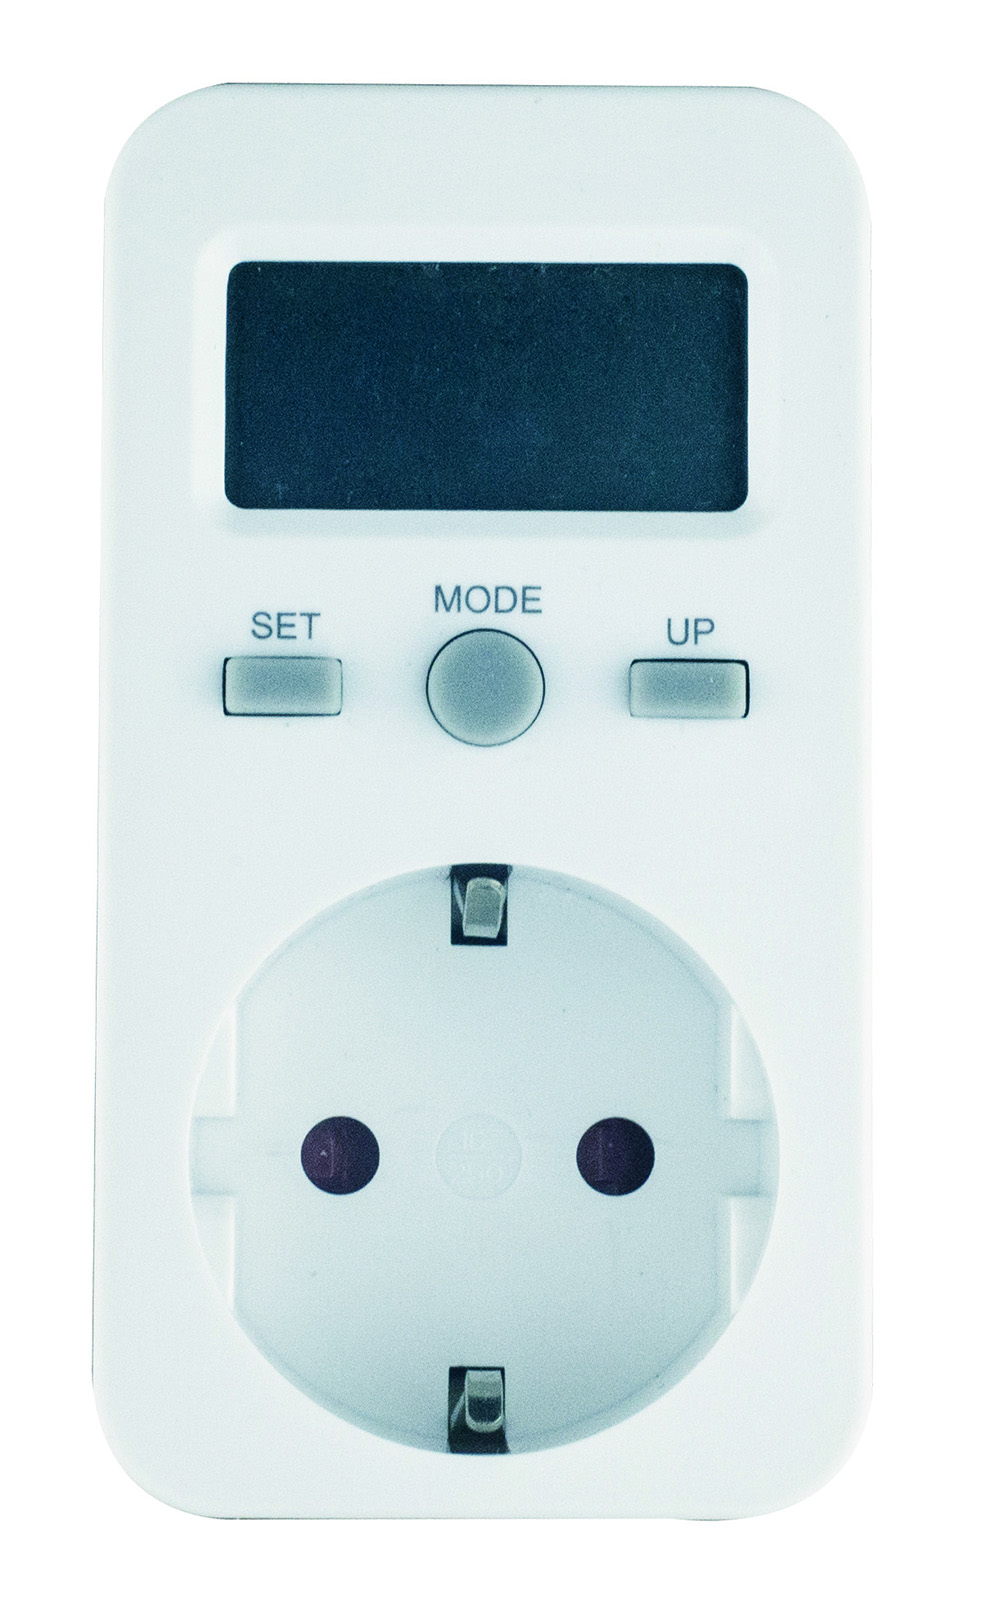 plug-in timer switch to control the electronic power to the appliances